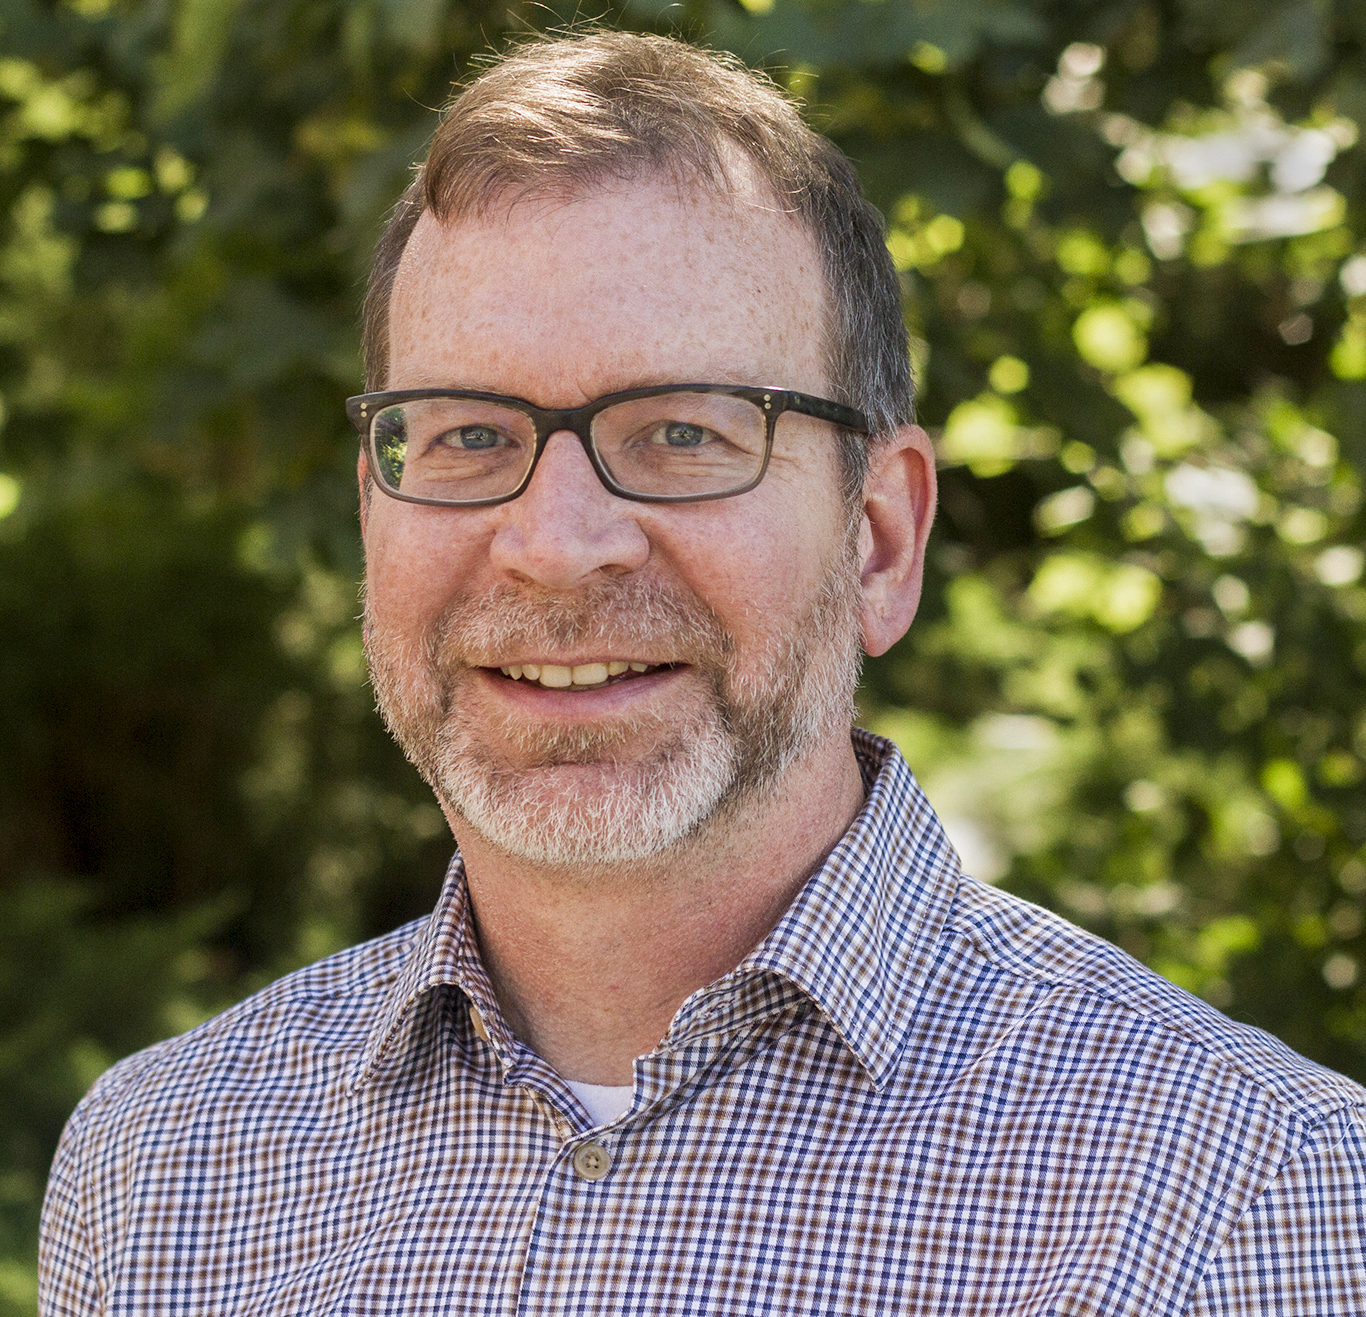 Michael Cleveland succeeded Laura Hill as department head after being nominated for the position by his coworkers. Hill stepped down to become vice provost for Faculty Development and Affairs.